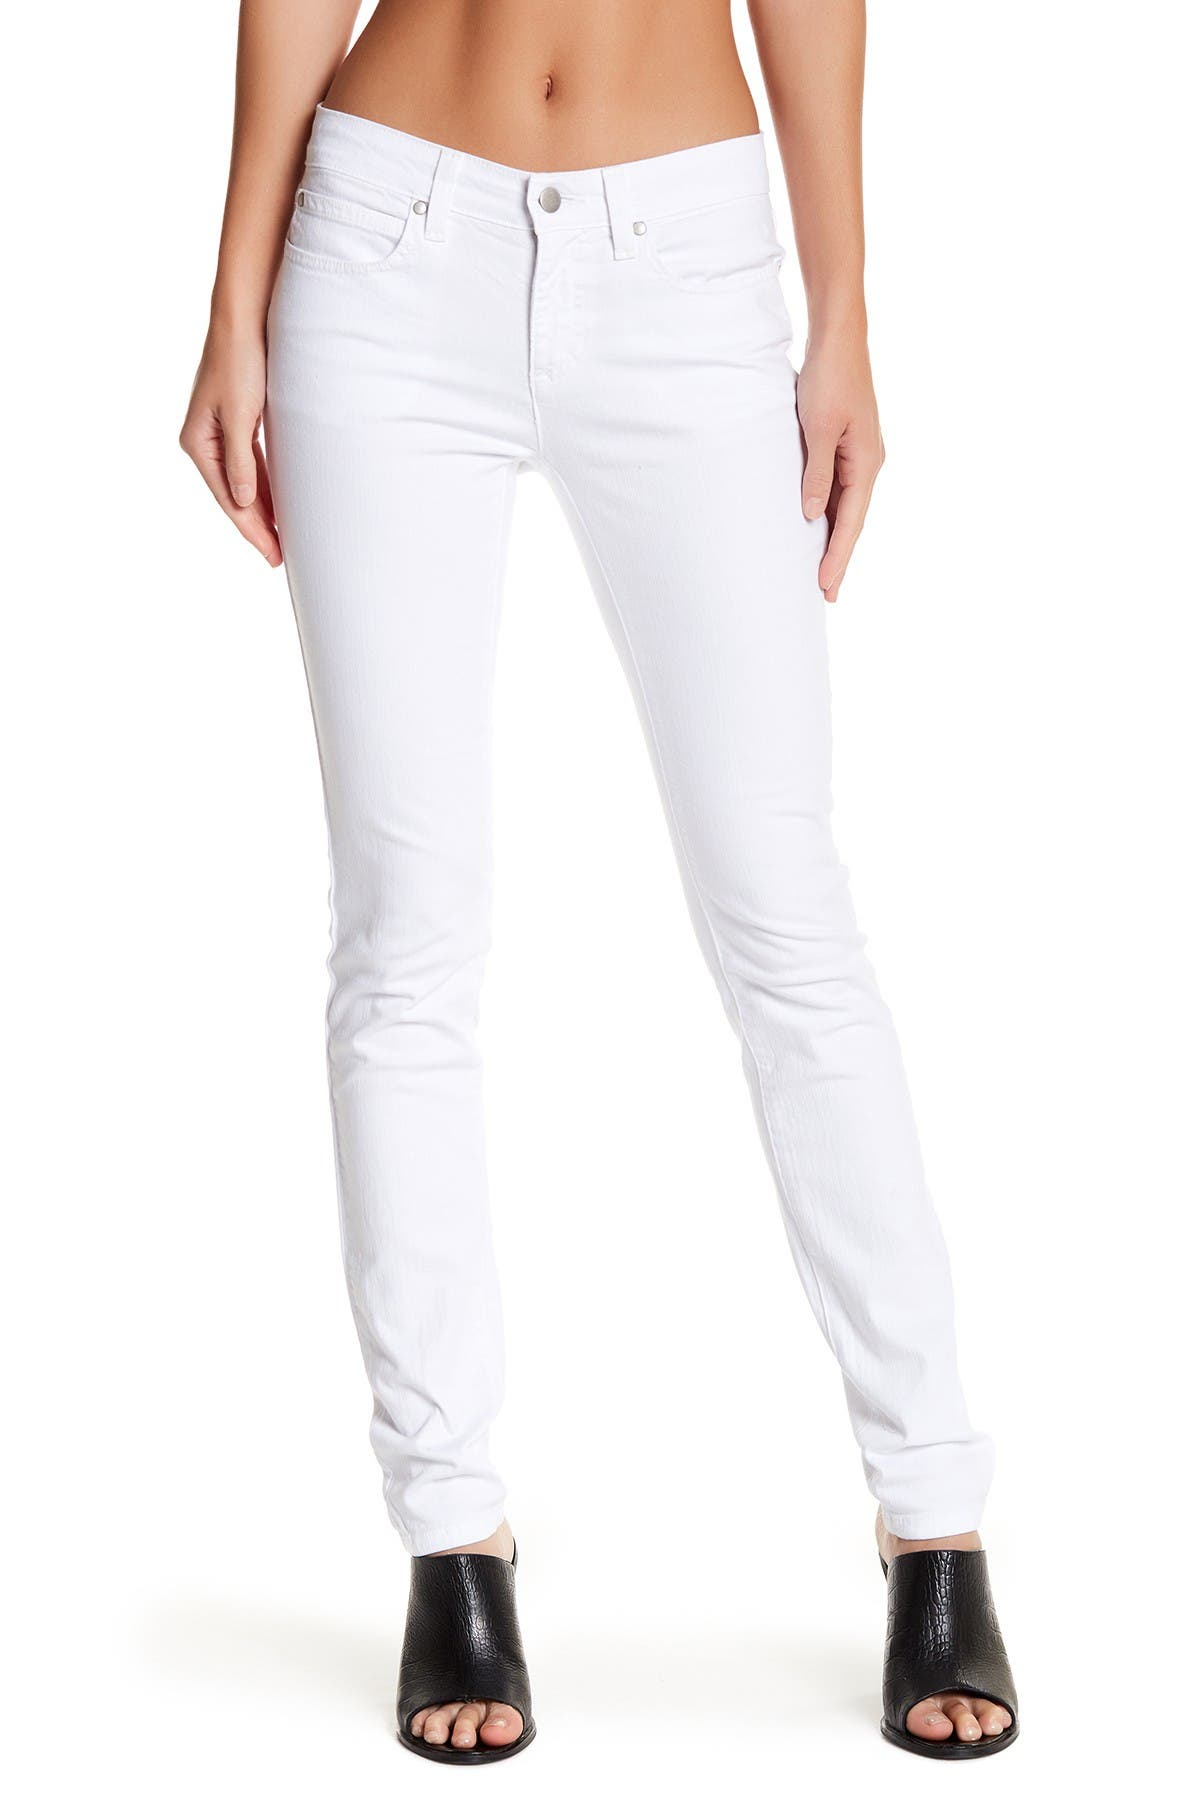 Image of Eileen Fisher Mid Rise Skinny Jeans